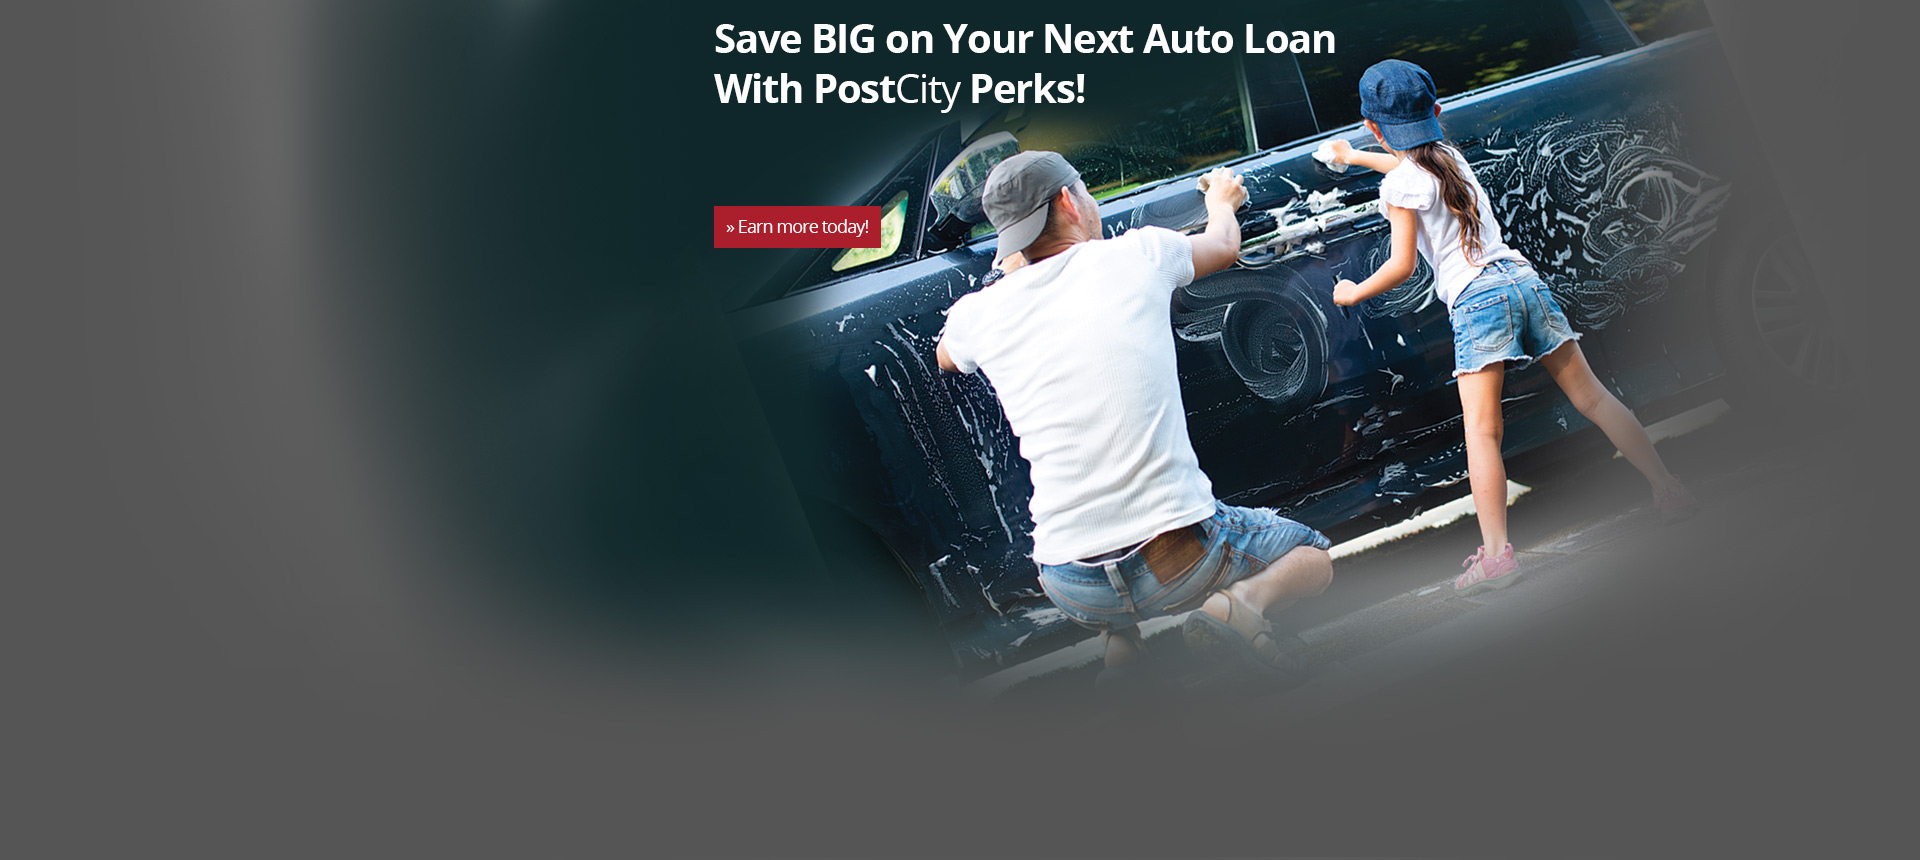 Auto Loans and Perks!